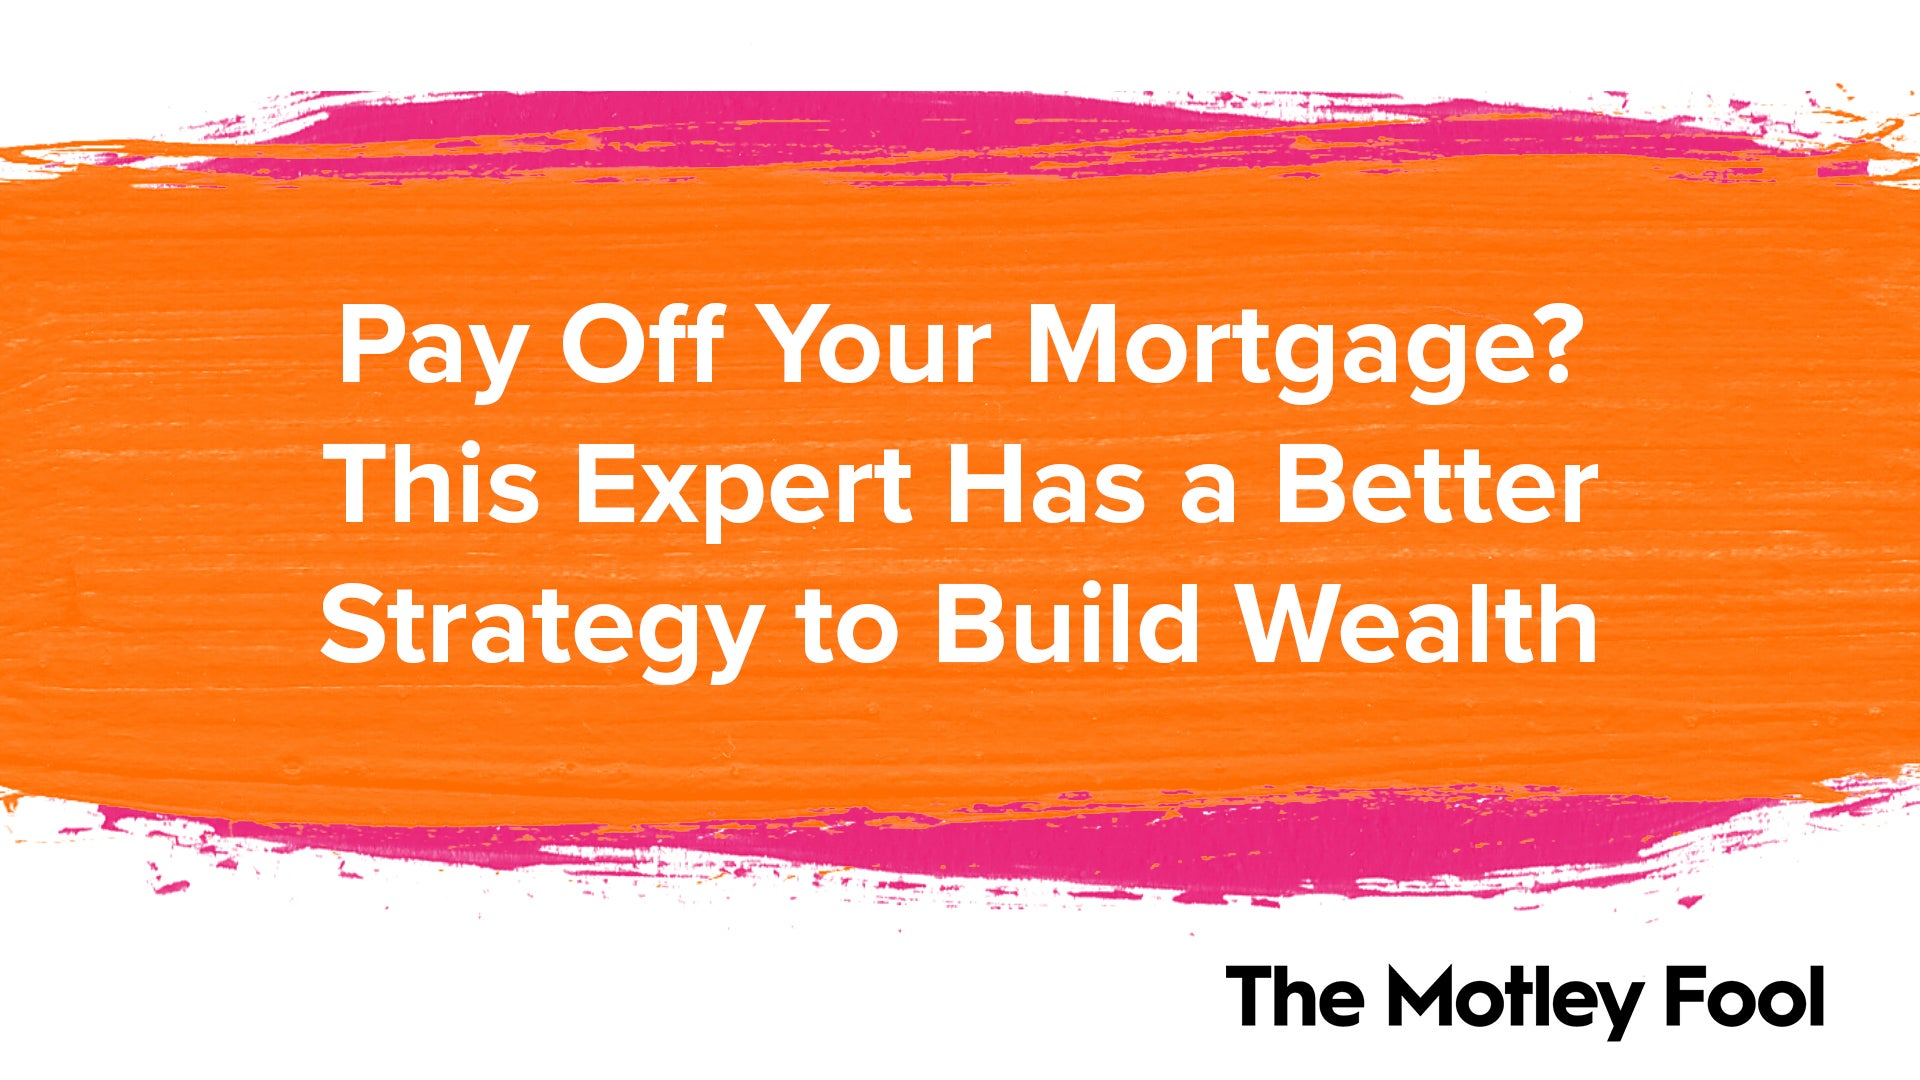 Pay Off Your Mortgage? This Expert Has a Better Strategy to Build Wealth